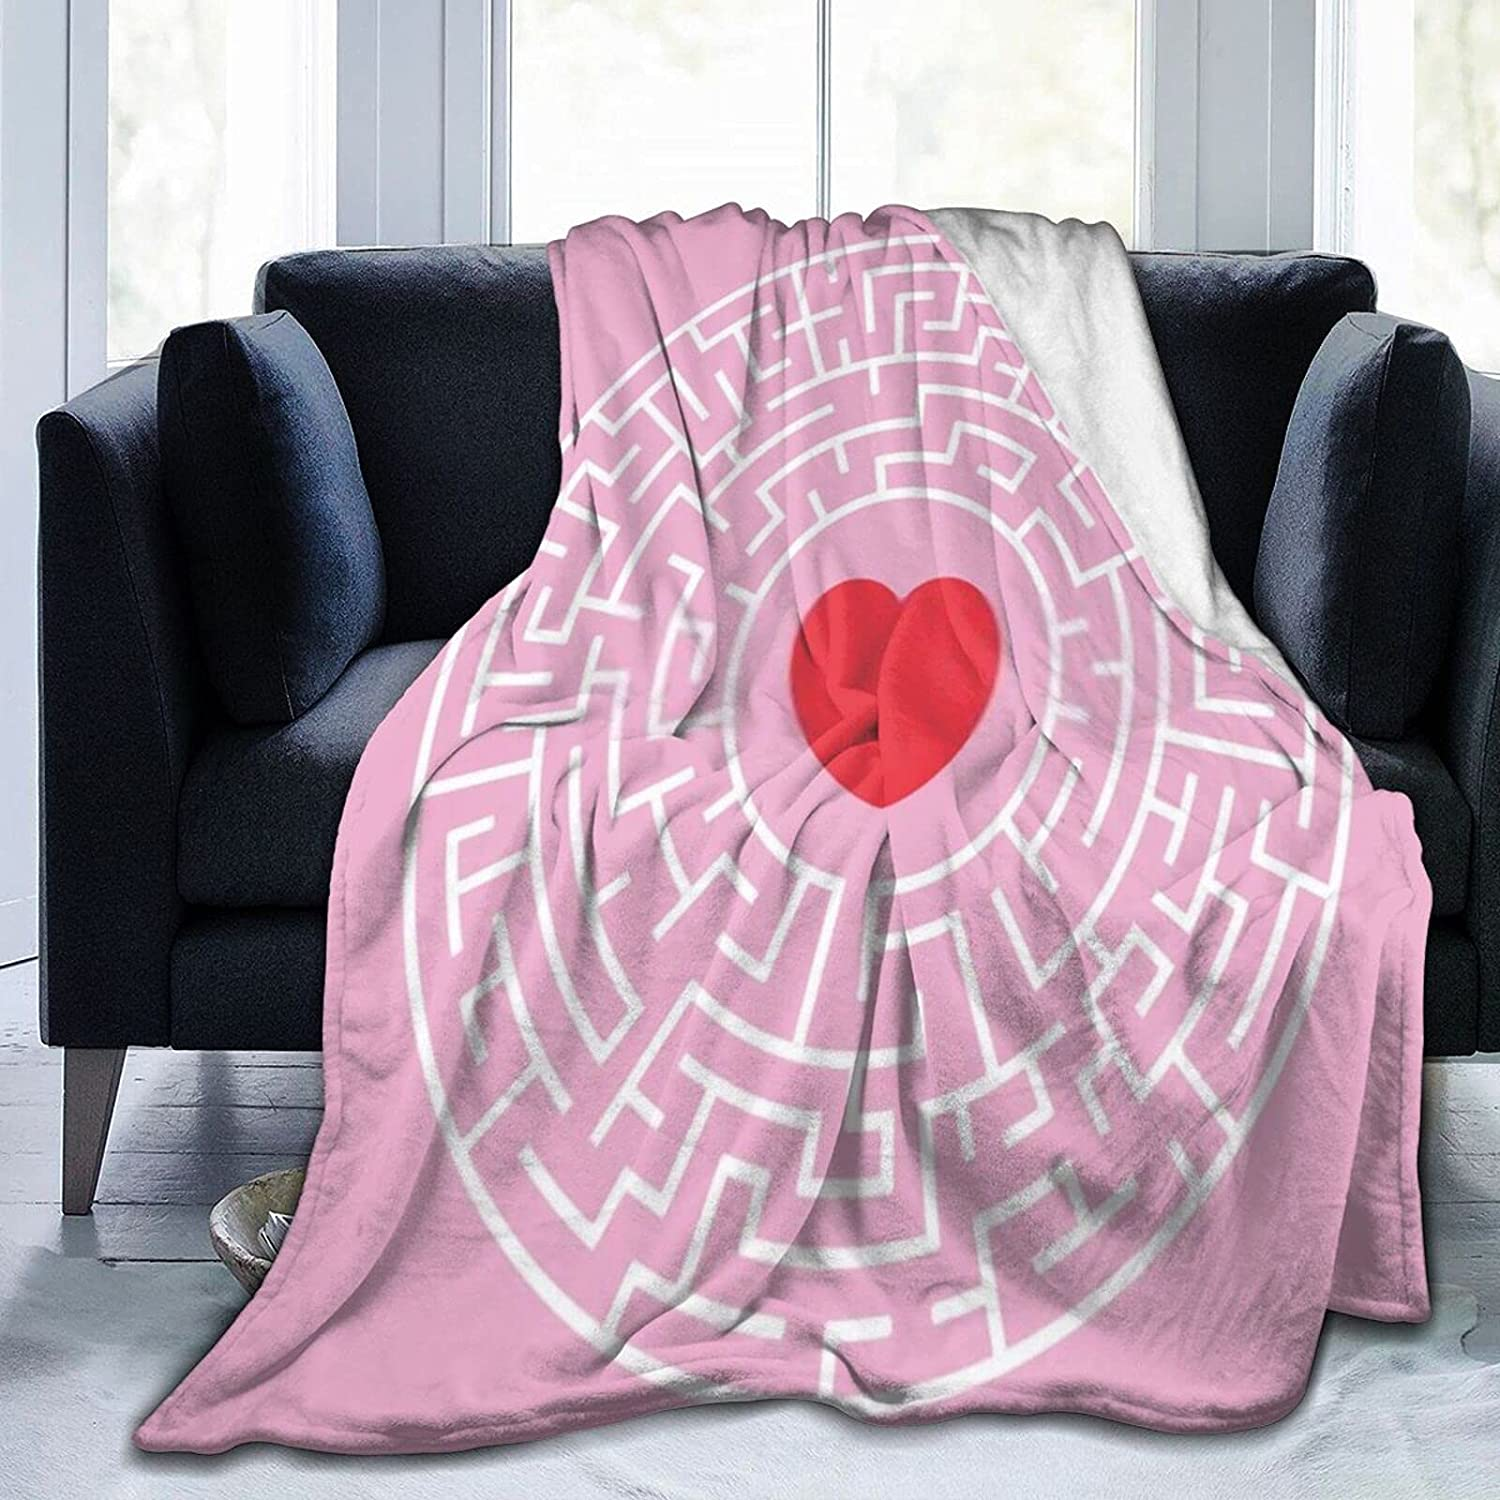 Sale Find Your Way1 Max 54% OFF Blanket Soft and Micro Super Comfortable Woo